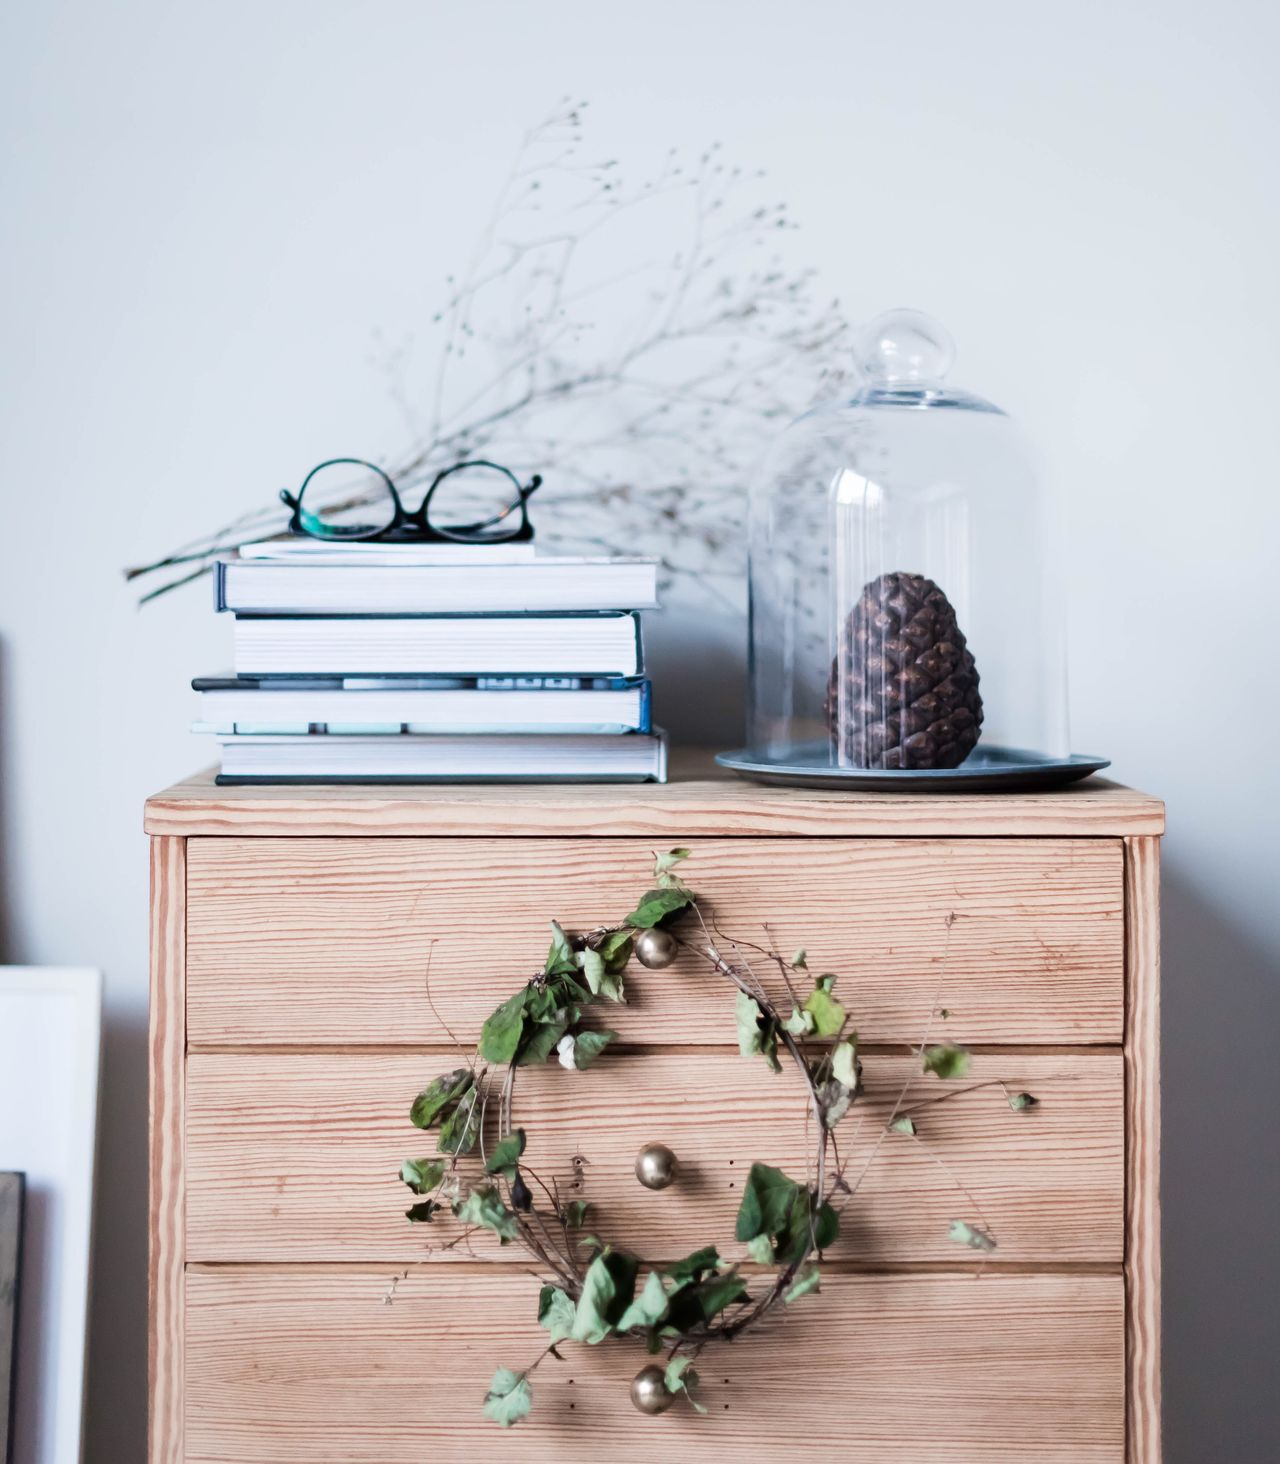 Interior Decorating Still Life Wreath Autumn Mood Interior Style Interior Design Interior Home StillLifePhotography Lifestyle Photography Moments Of Life Nature In The Home